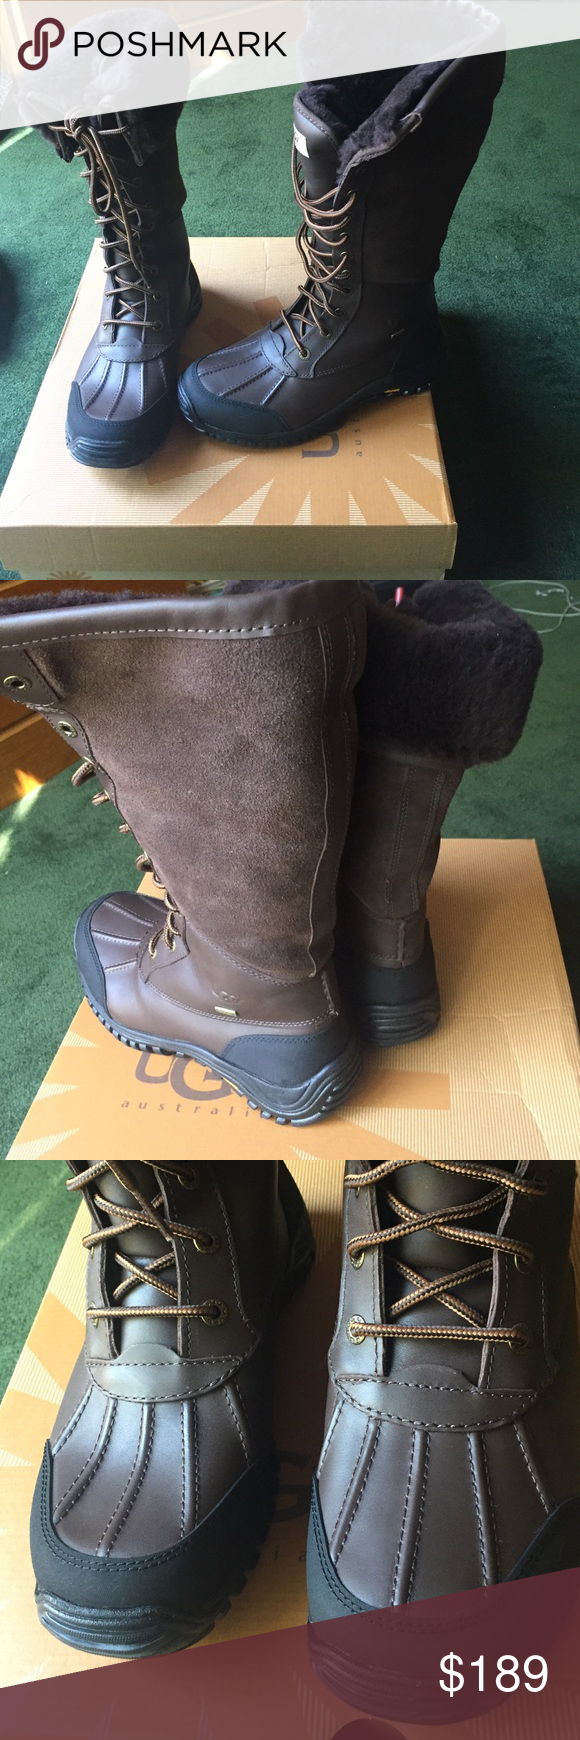 Never used authentic UGG Adirondack size 7.5 Comes with